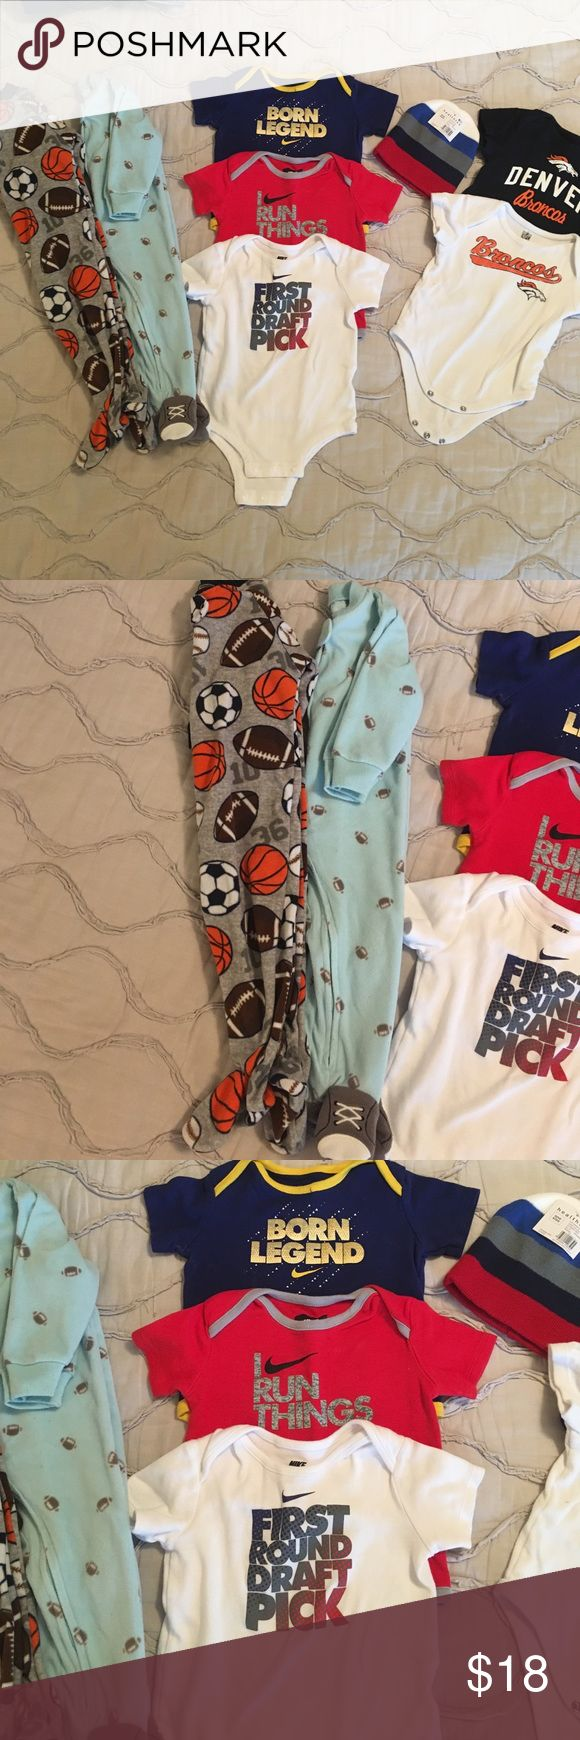 🏈 Get your little guy ready for football season! 3 Nike onesies 1-6/9 months and 2-9/12 months (when you hold them up they're almost the same size and all fit my son the same), 2 camo onesies and 1 football pj. Everything is in excellent shape! 🏈🏈🏈 Nike Matching Sets